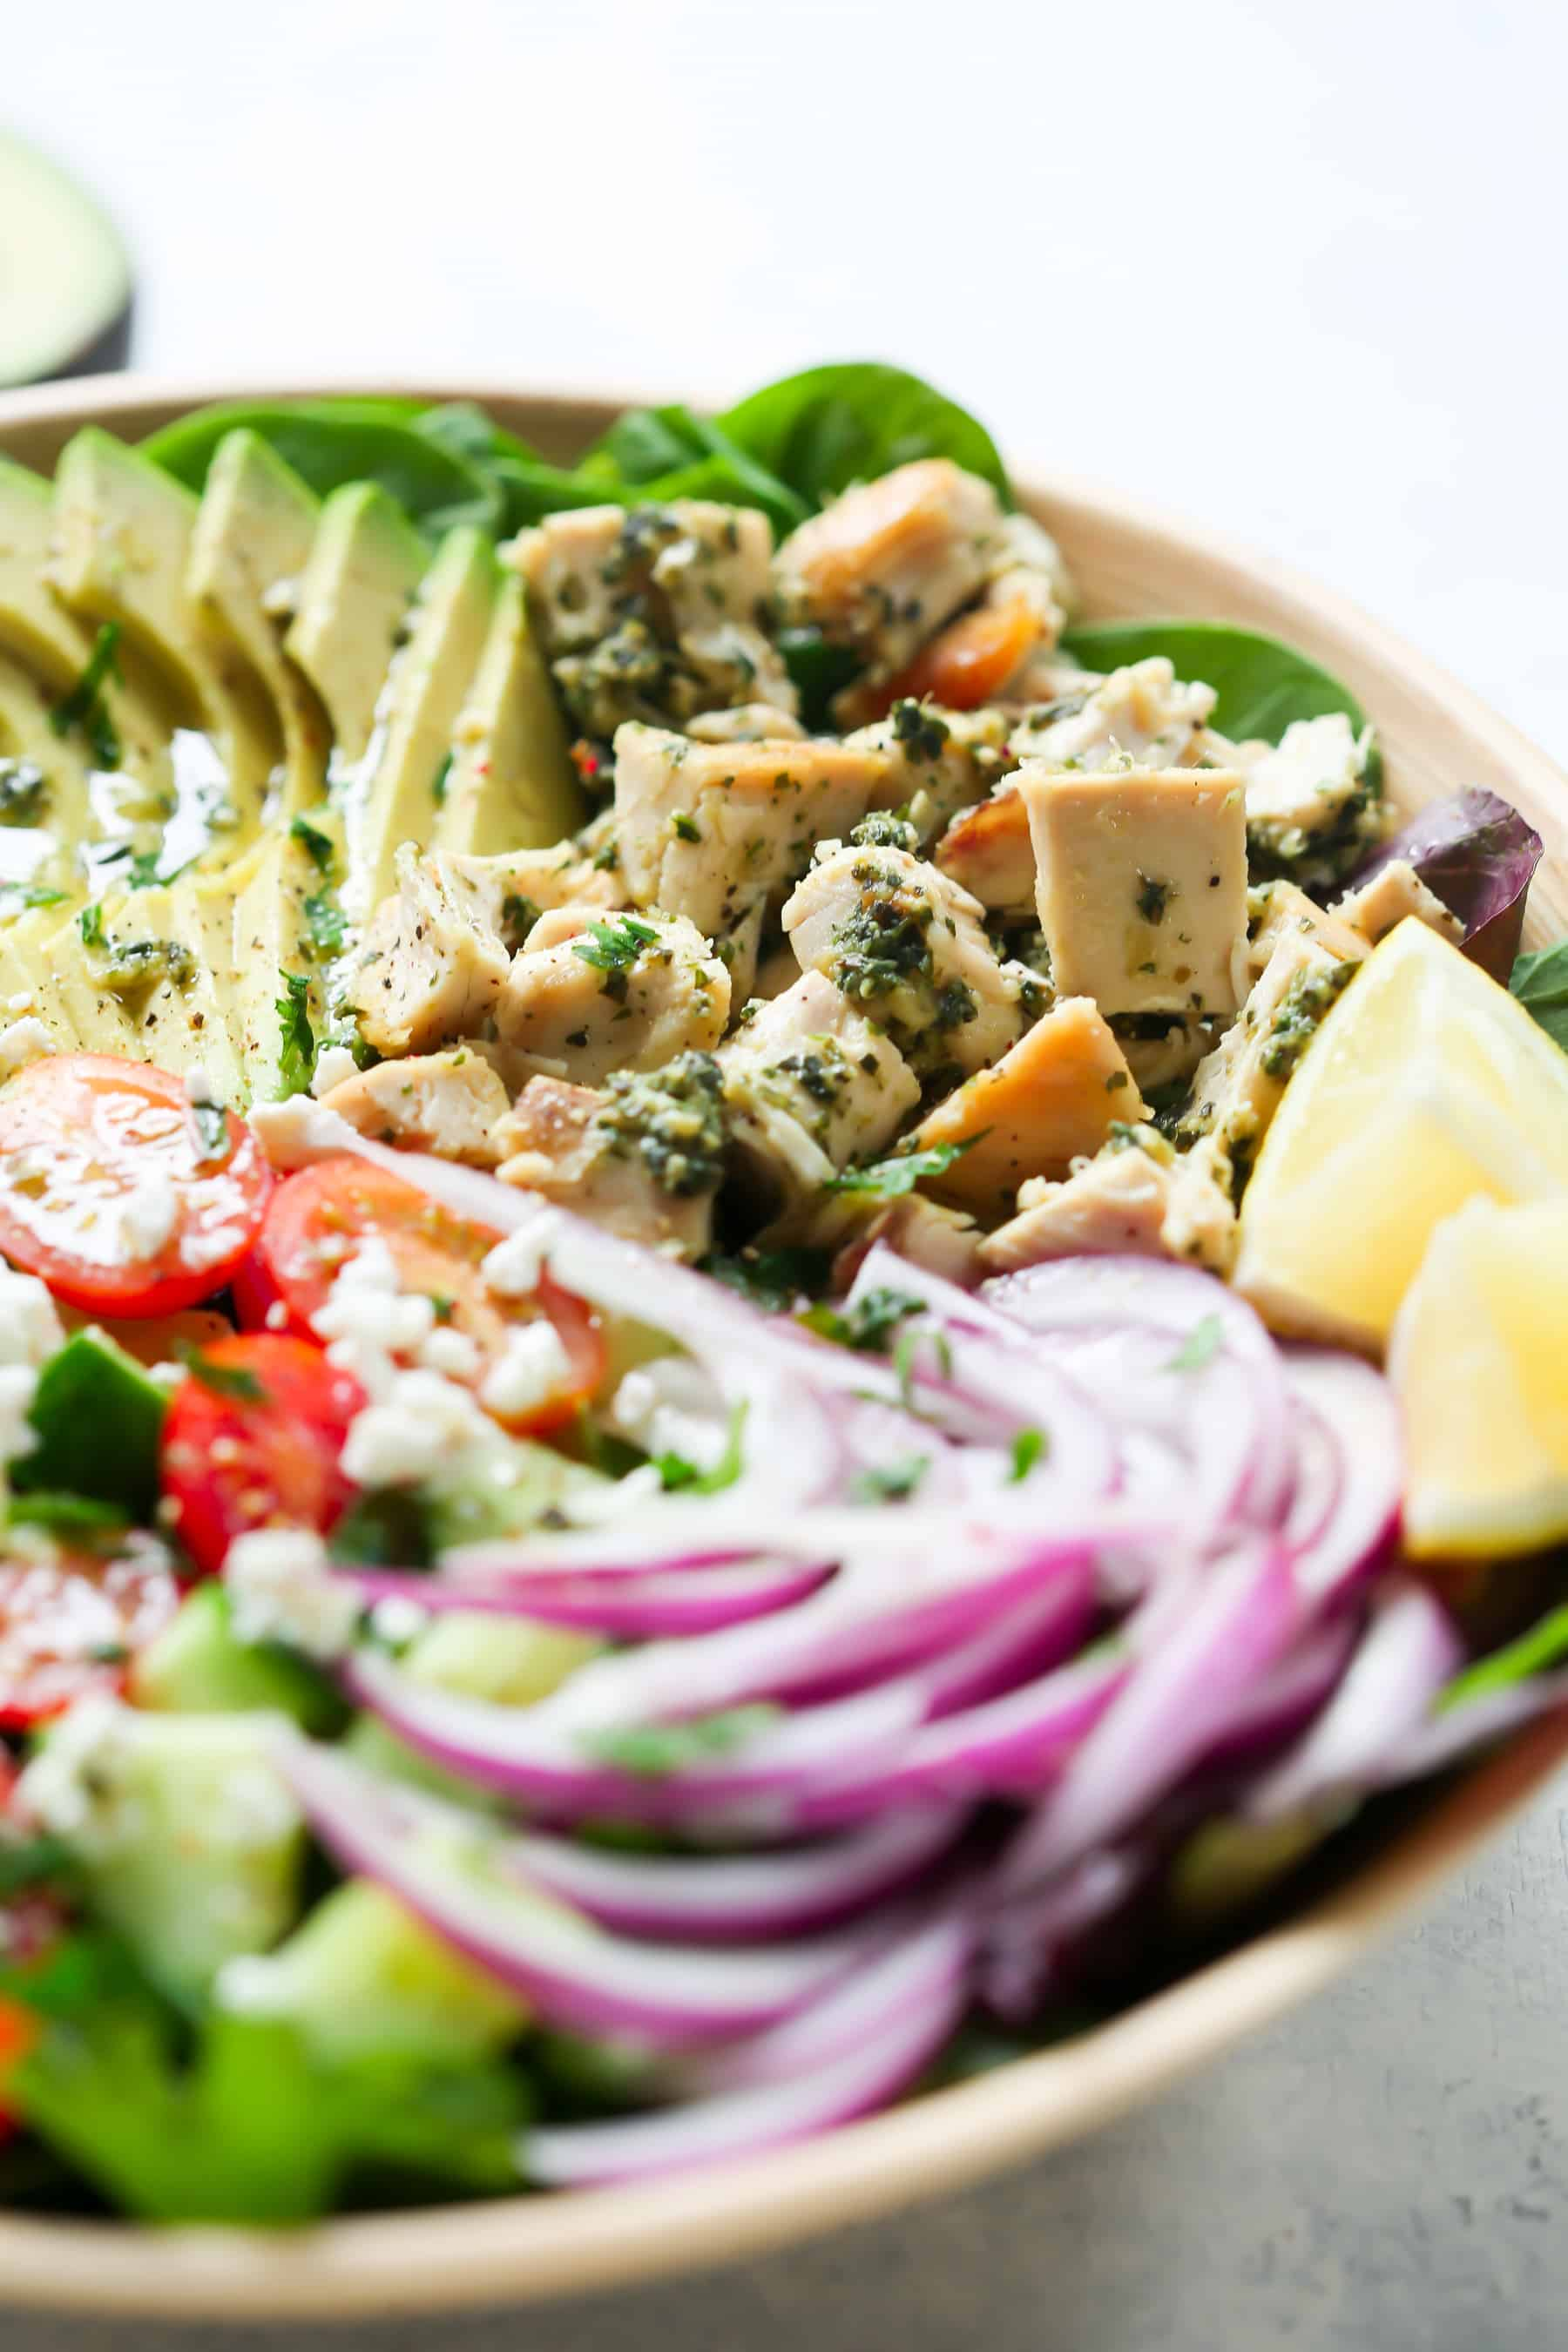 Pesto Chicken Salad - This healthy, easy, filling and super delicious Pesto Chicken Salad recipe is loaded with lettuces, cherry tomatoes, avocado, red onions and flavoured with a light lemon dressing.